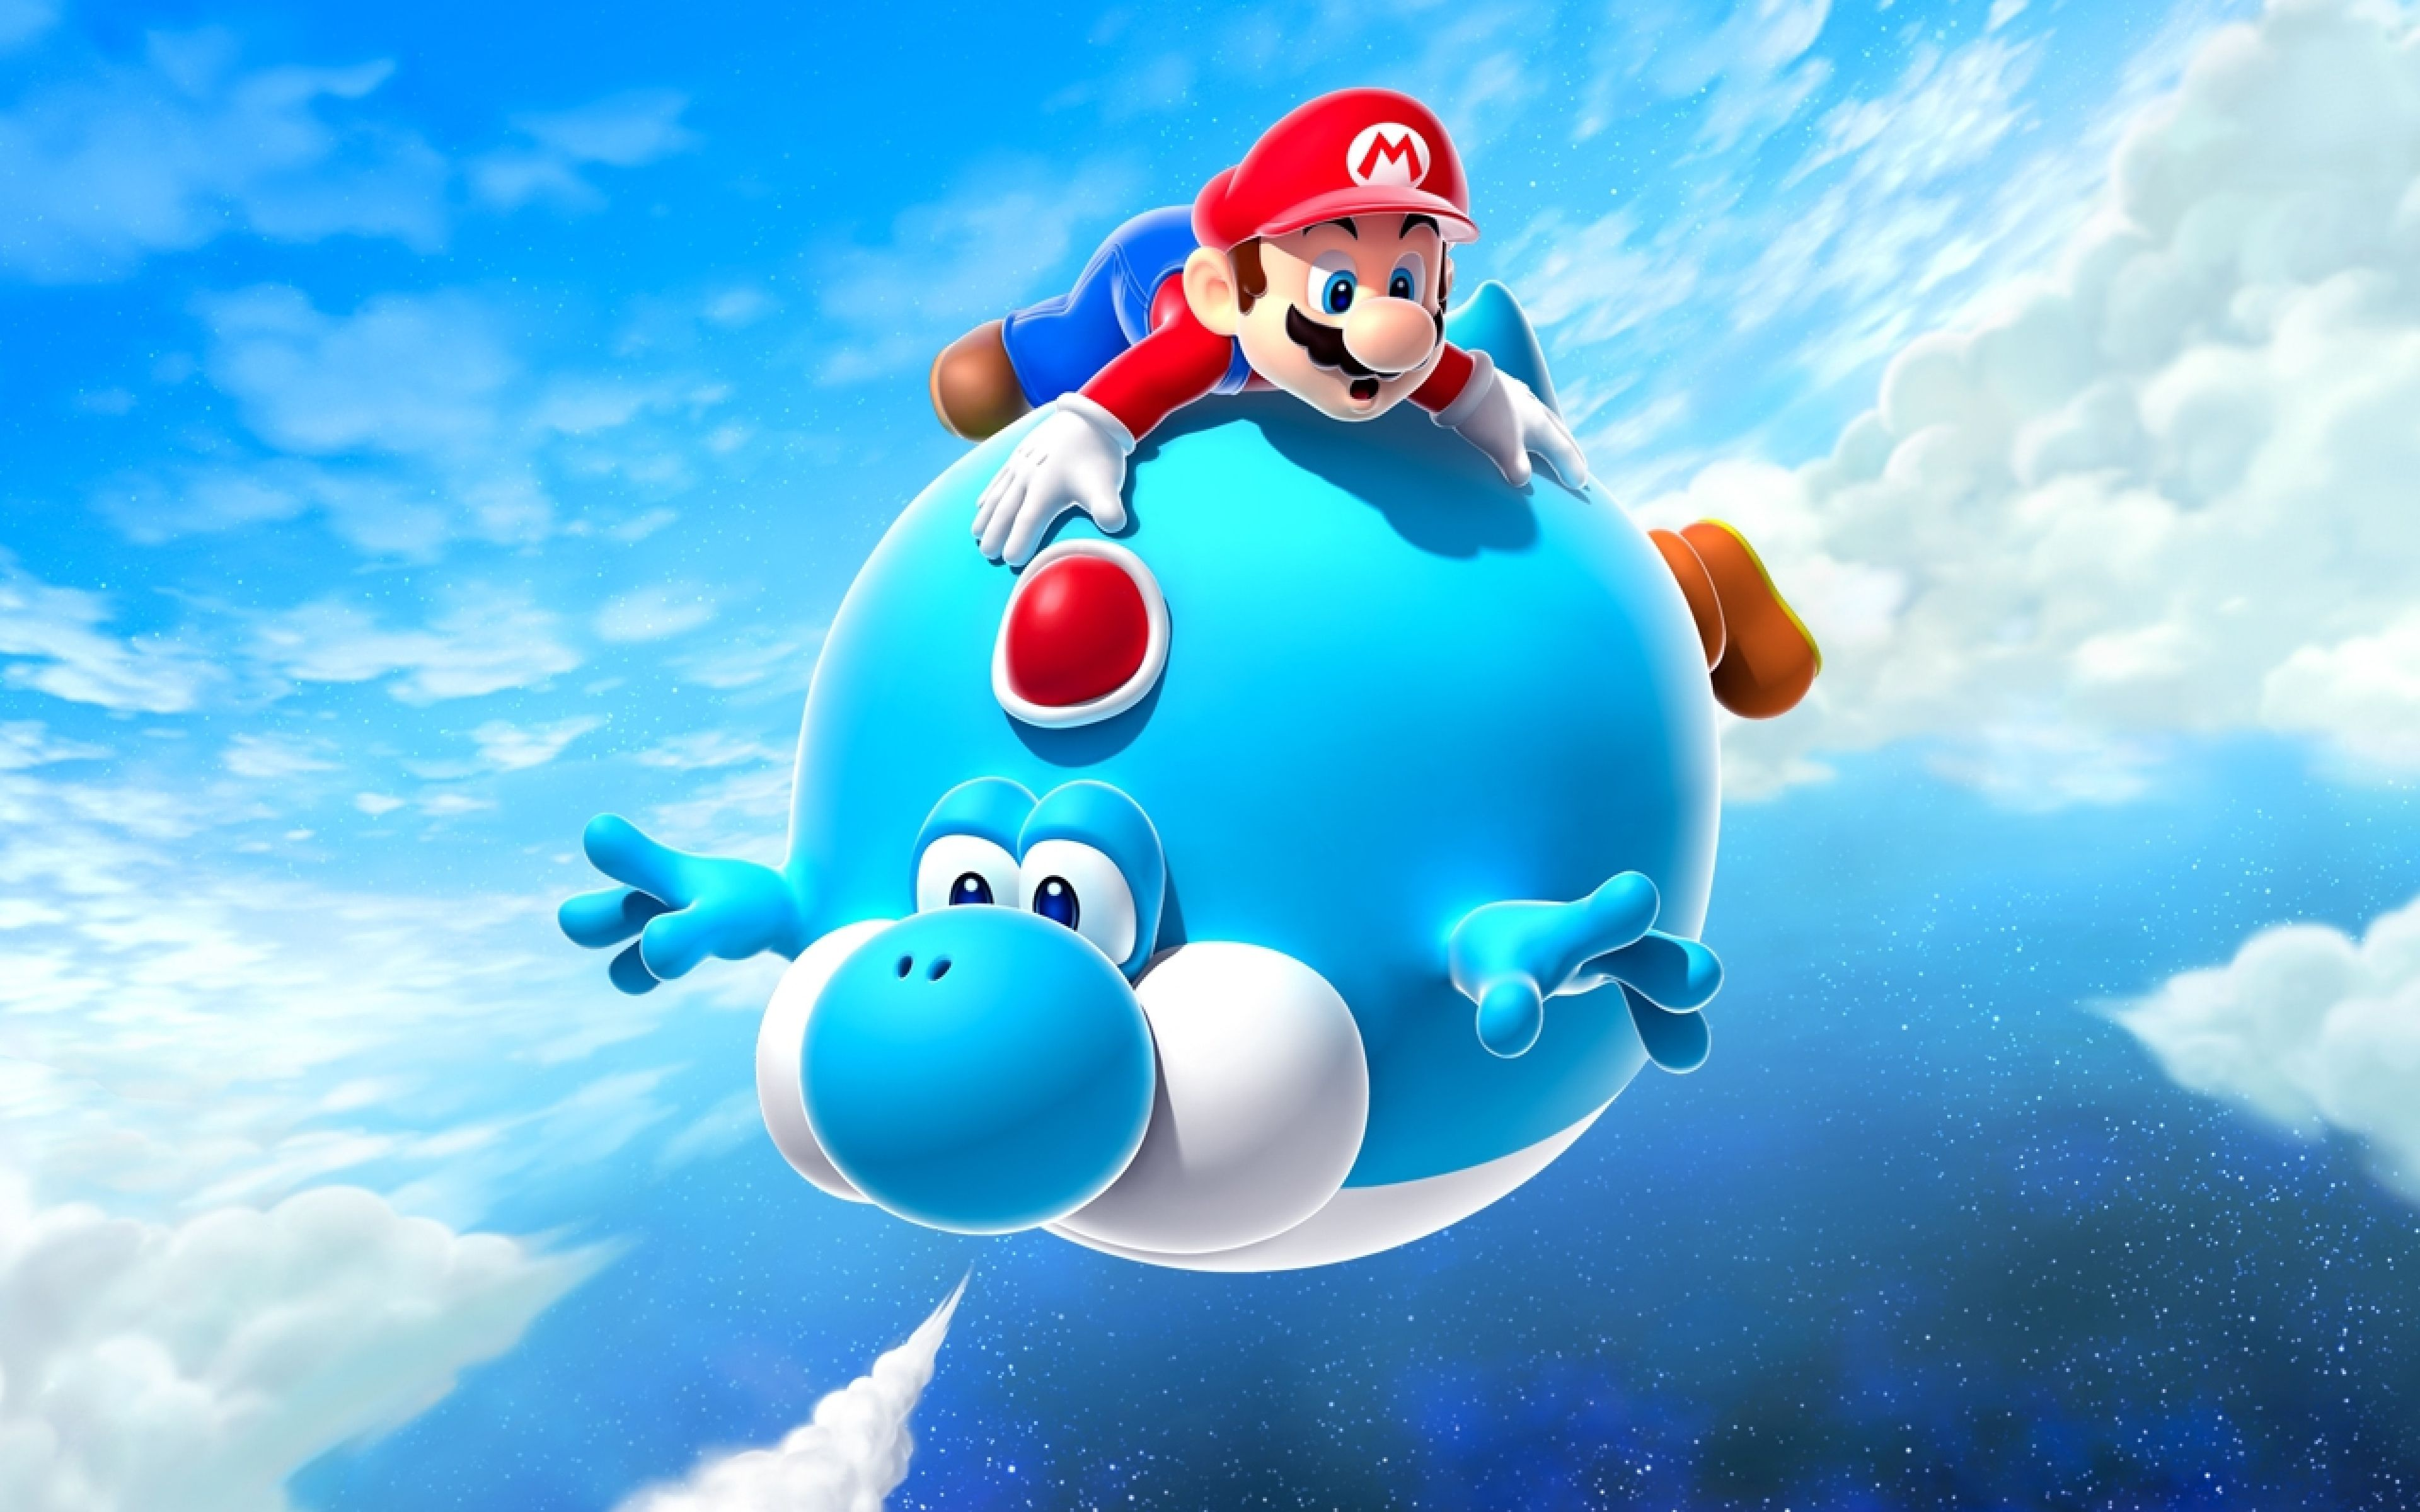 Super Mario Wallpapers High Quality Download Free in 2019